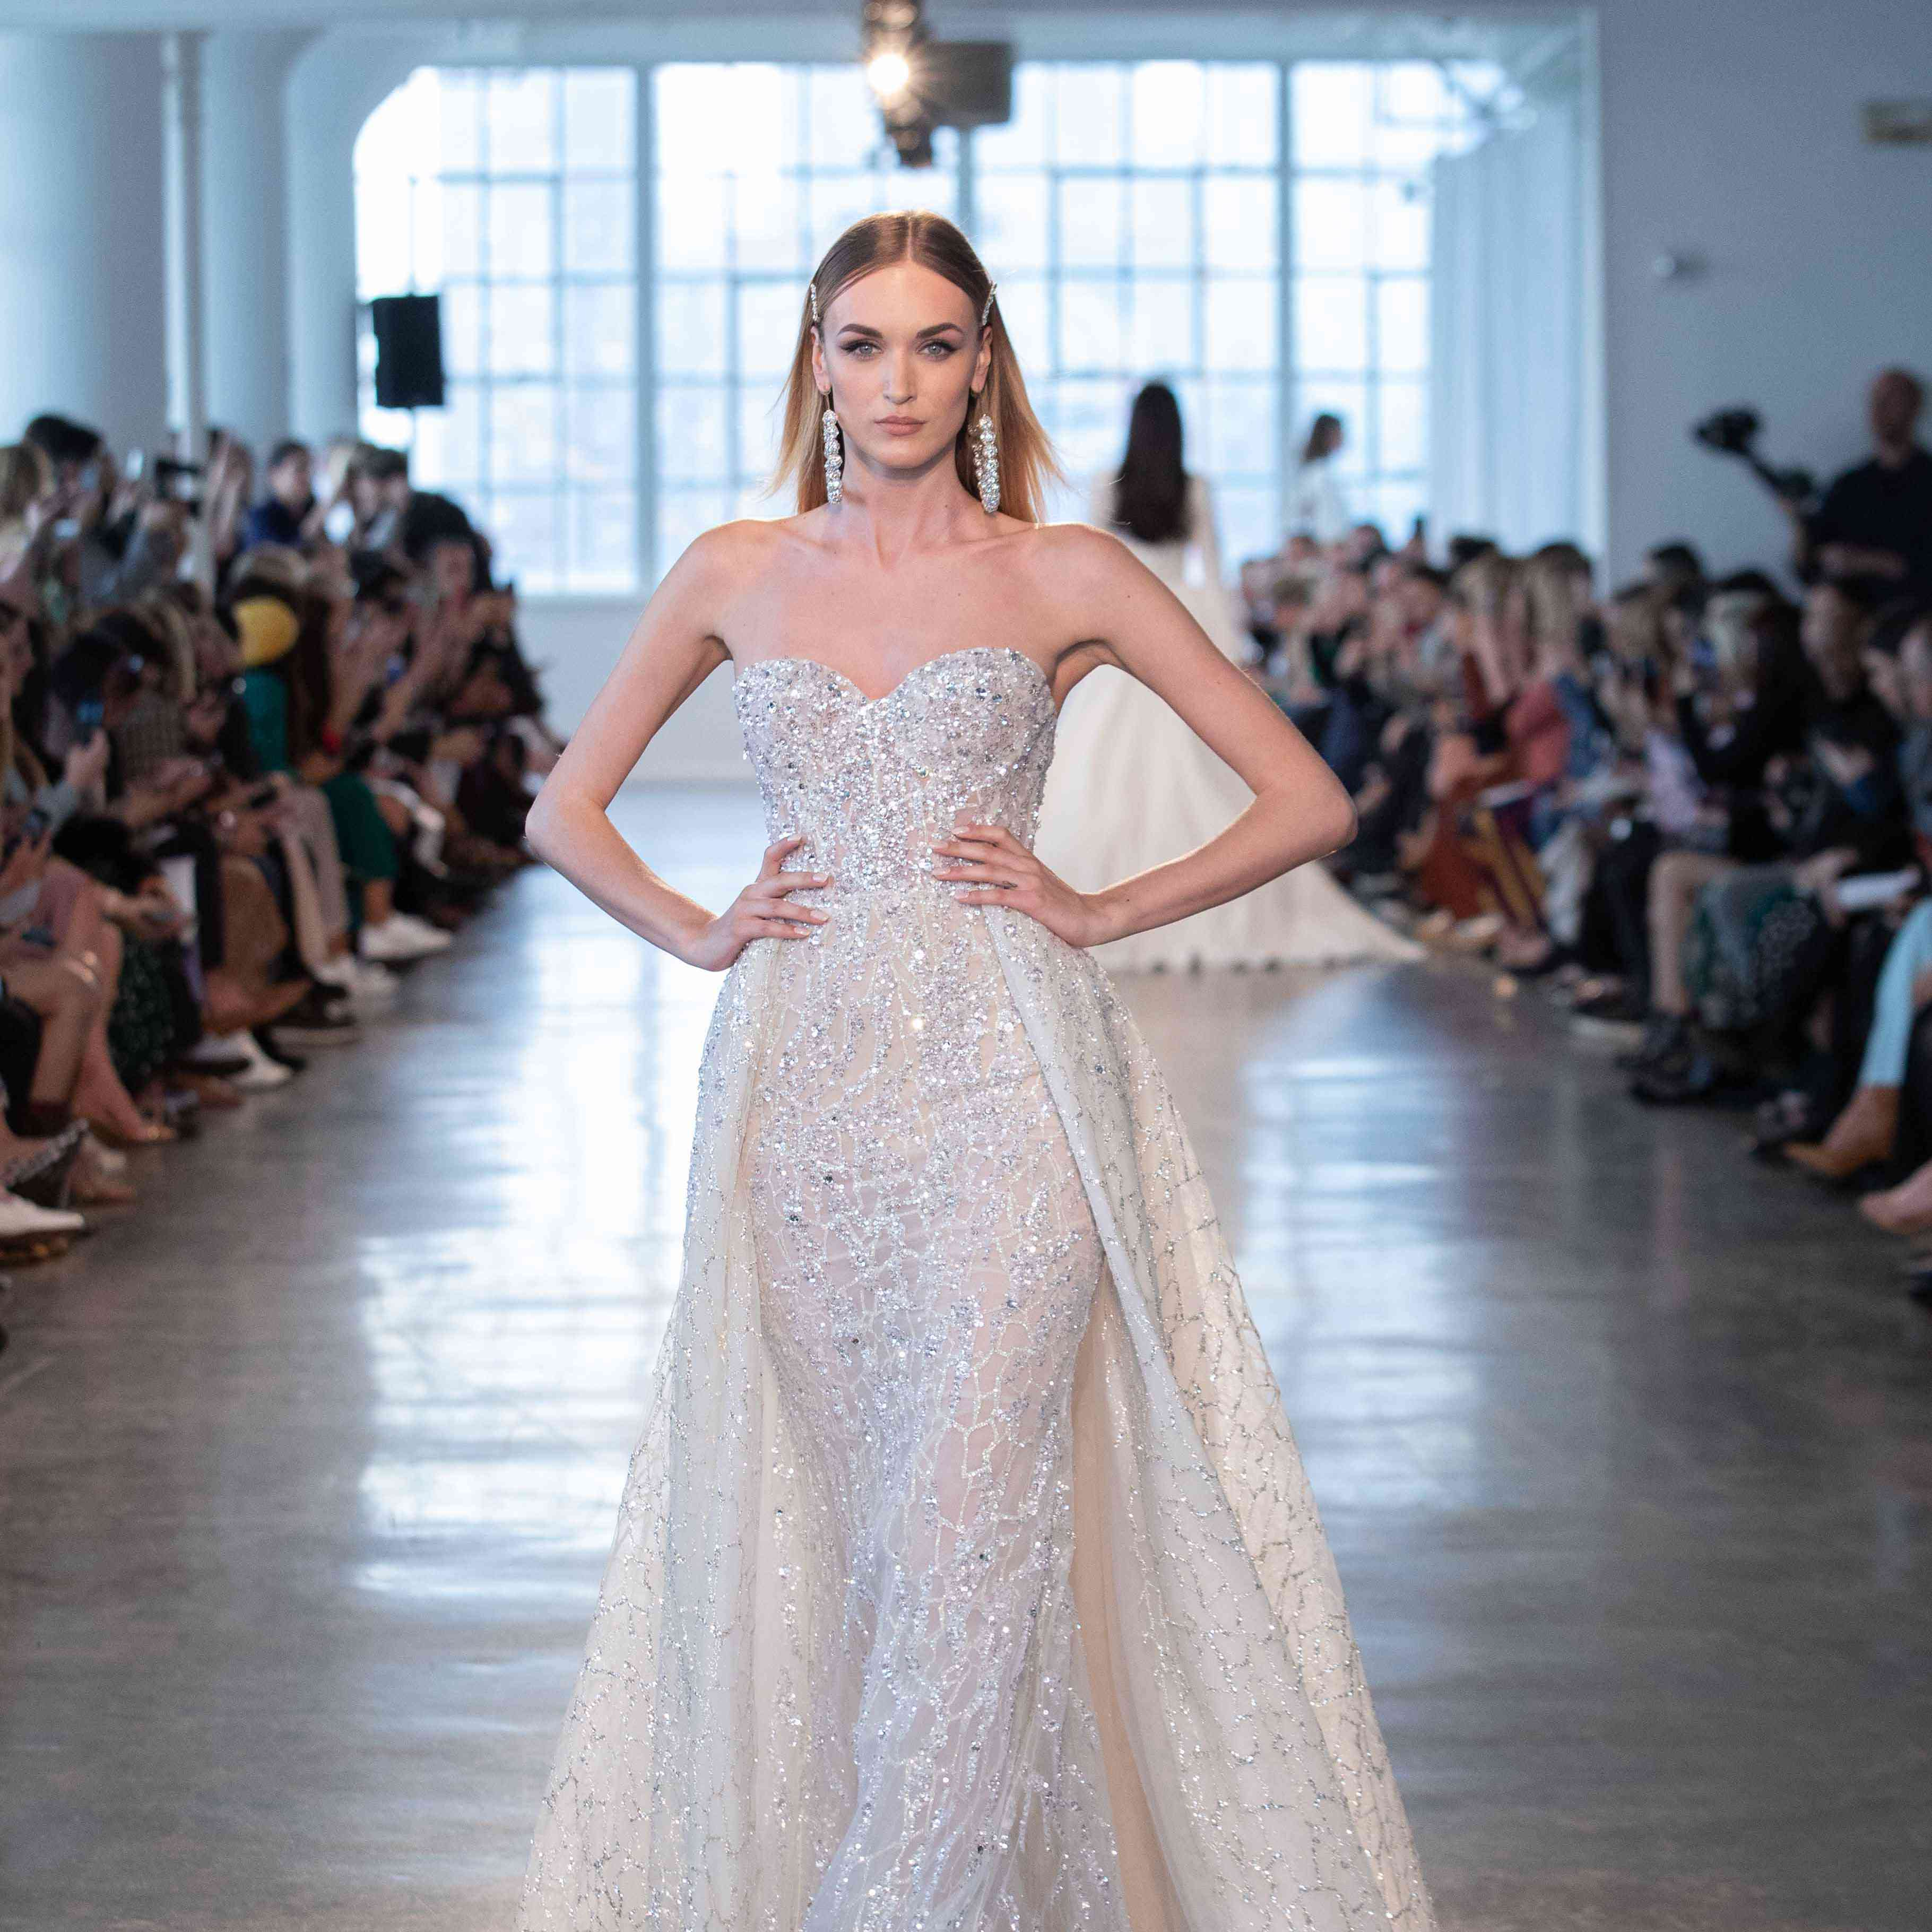 Wedding Dress Trends 2020.The 9 Spring 2020 Wedding Dress Trends You Need To Know